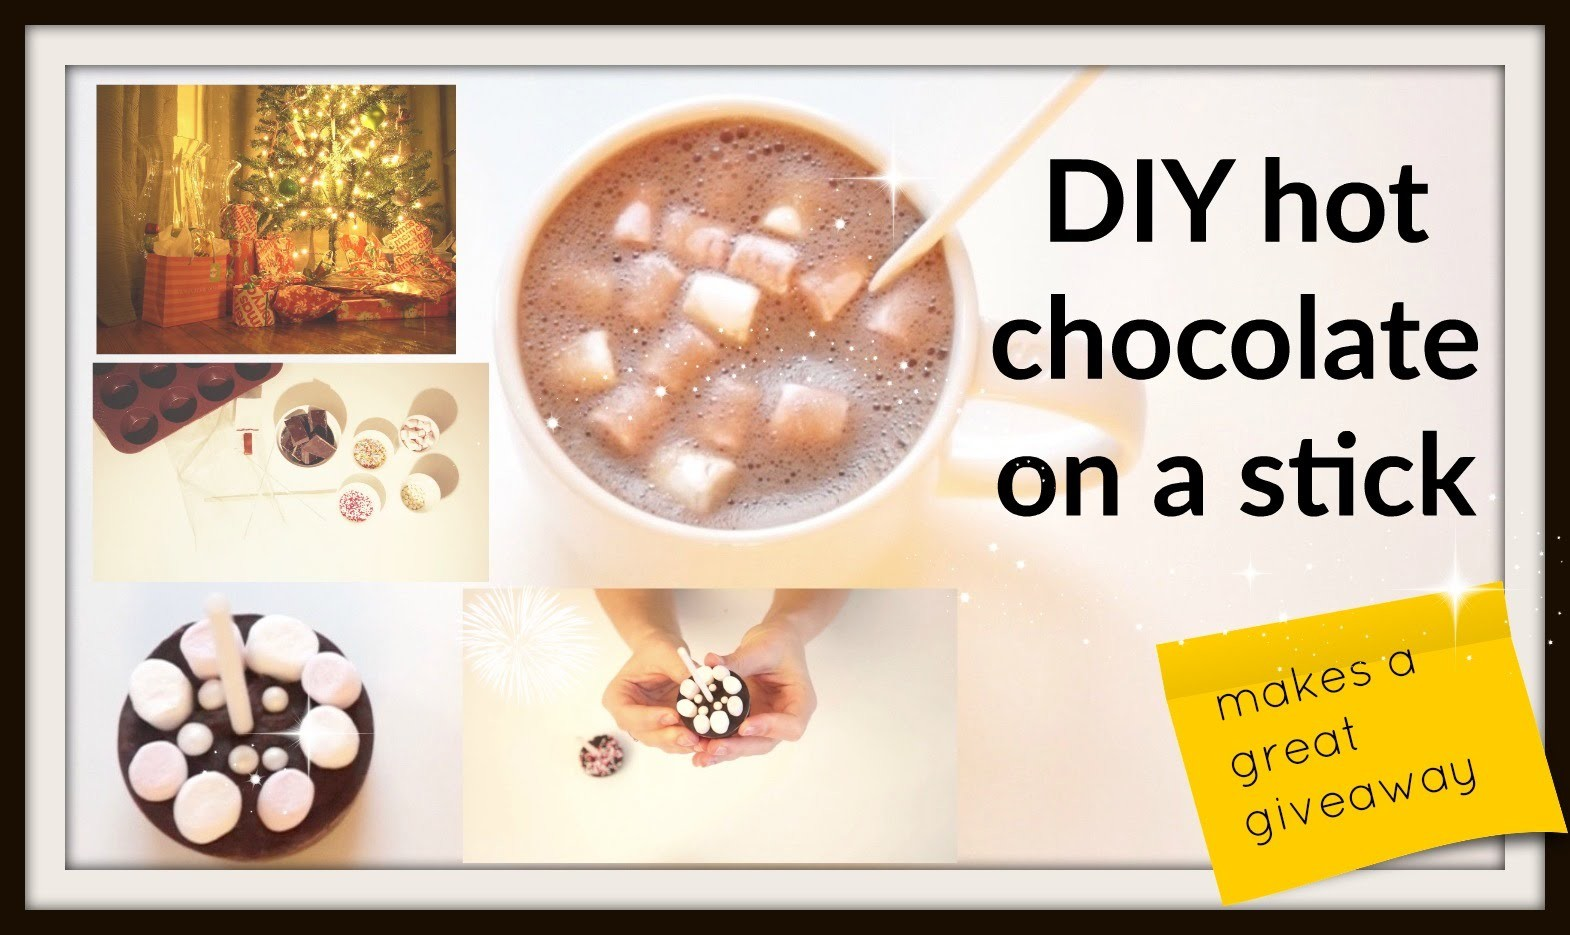 DIY hot chocolate on a stick *german*